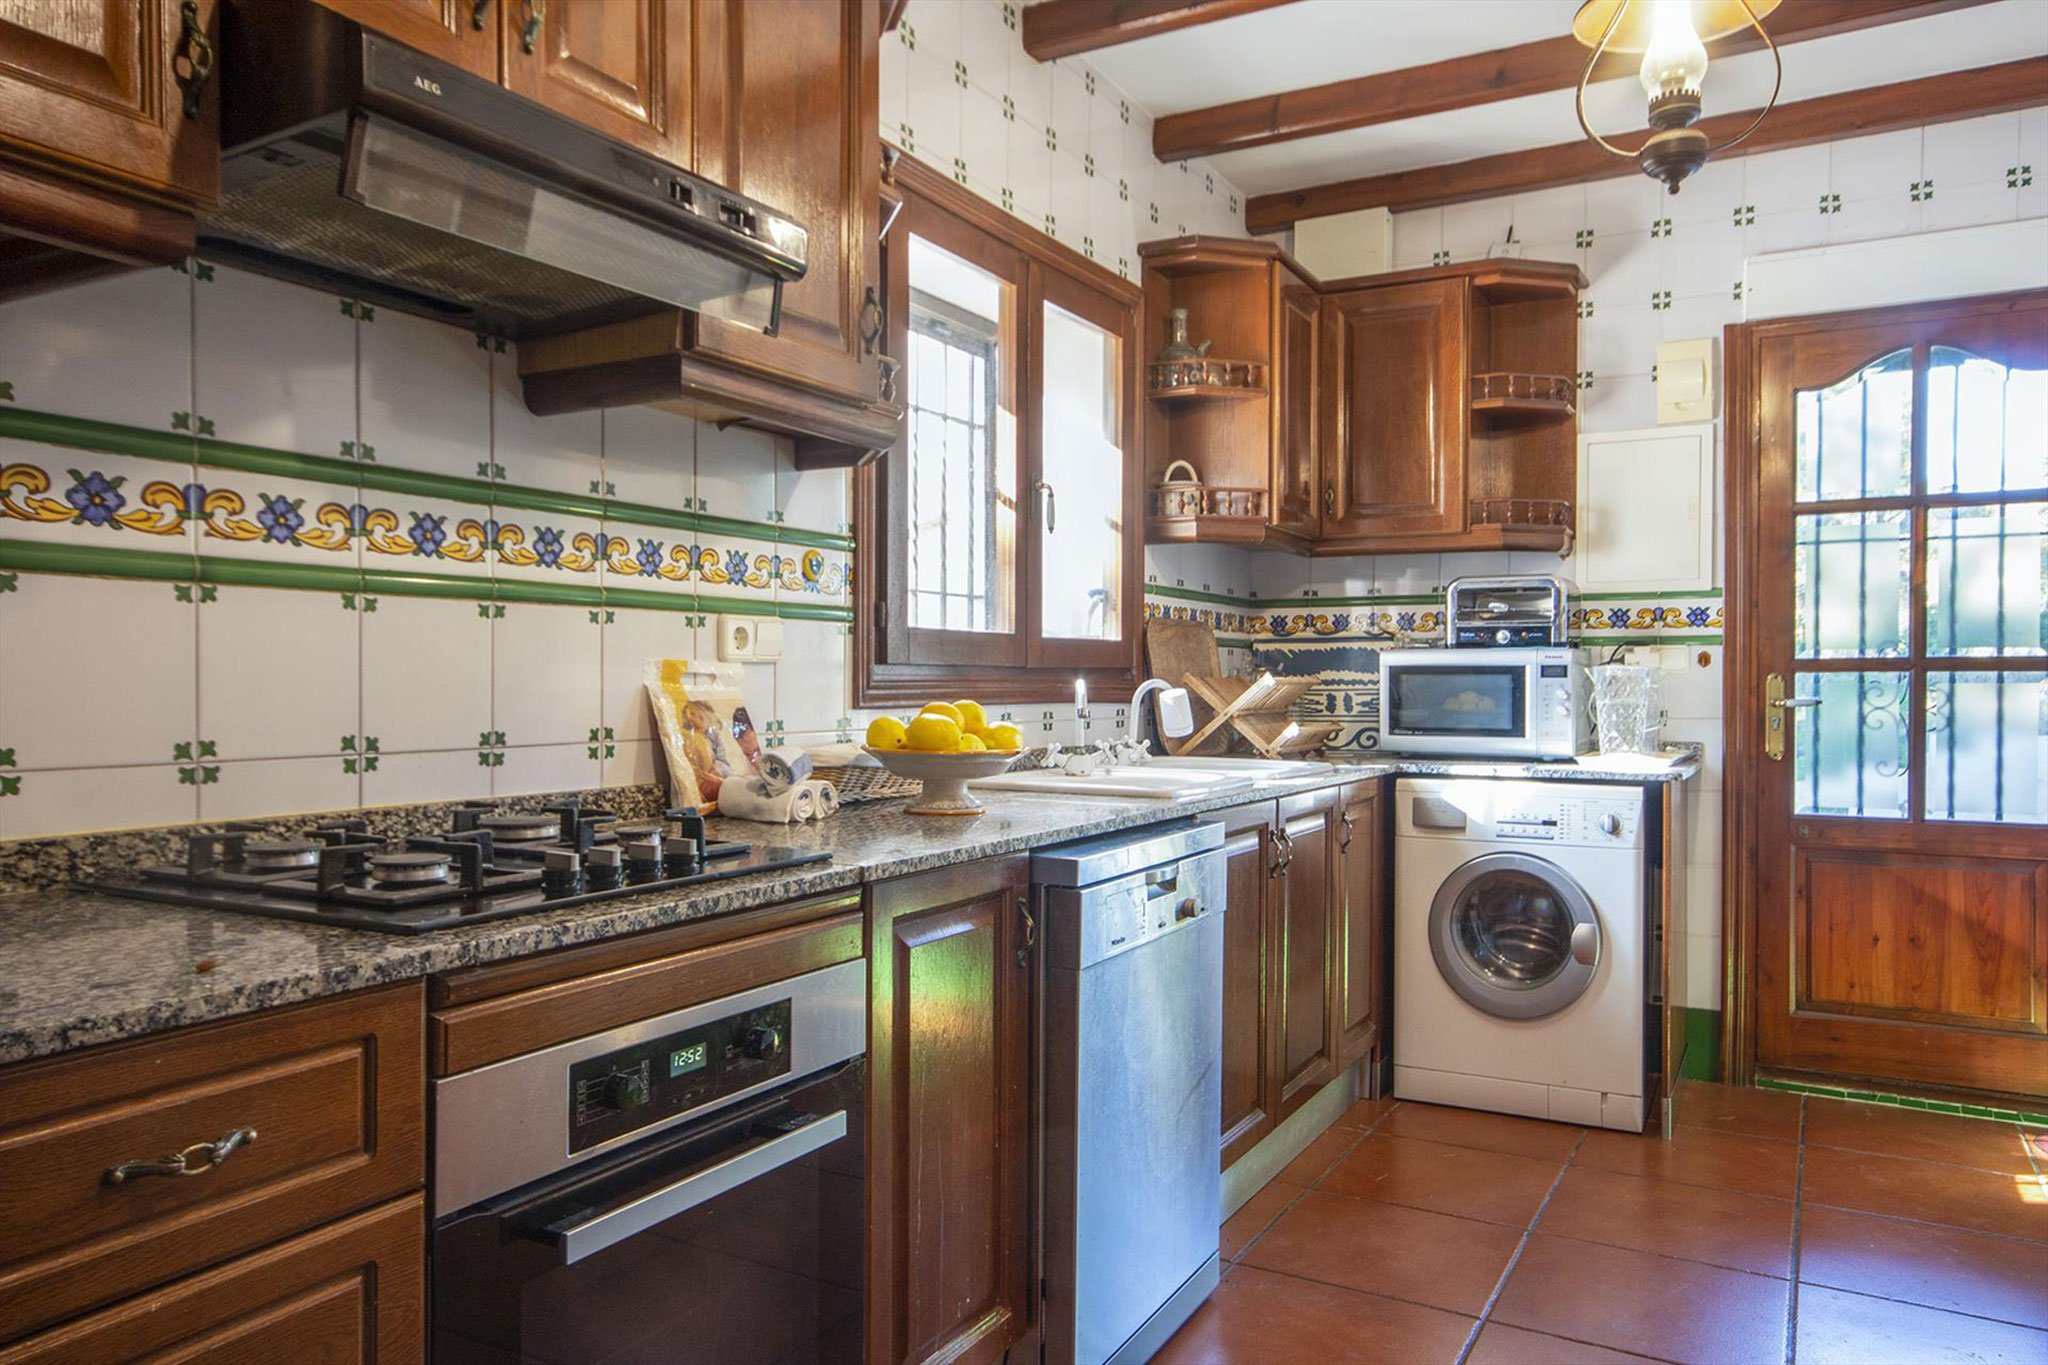 Kitchen in a large vacation home in Dénia - Aguila Rent a Villa